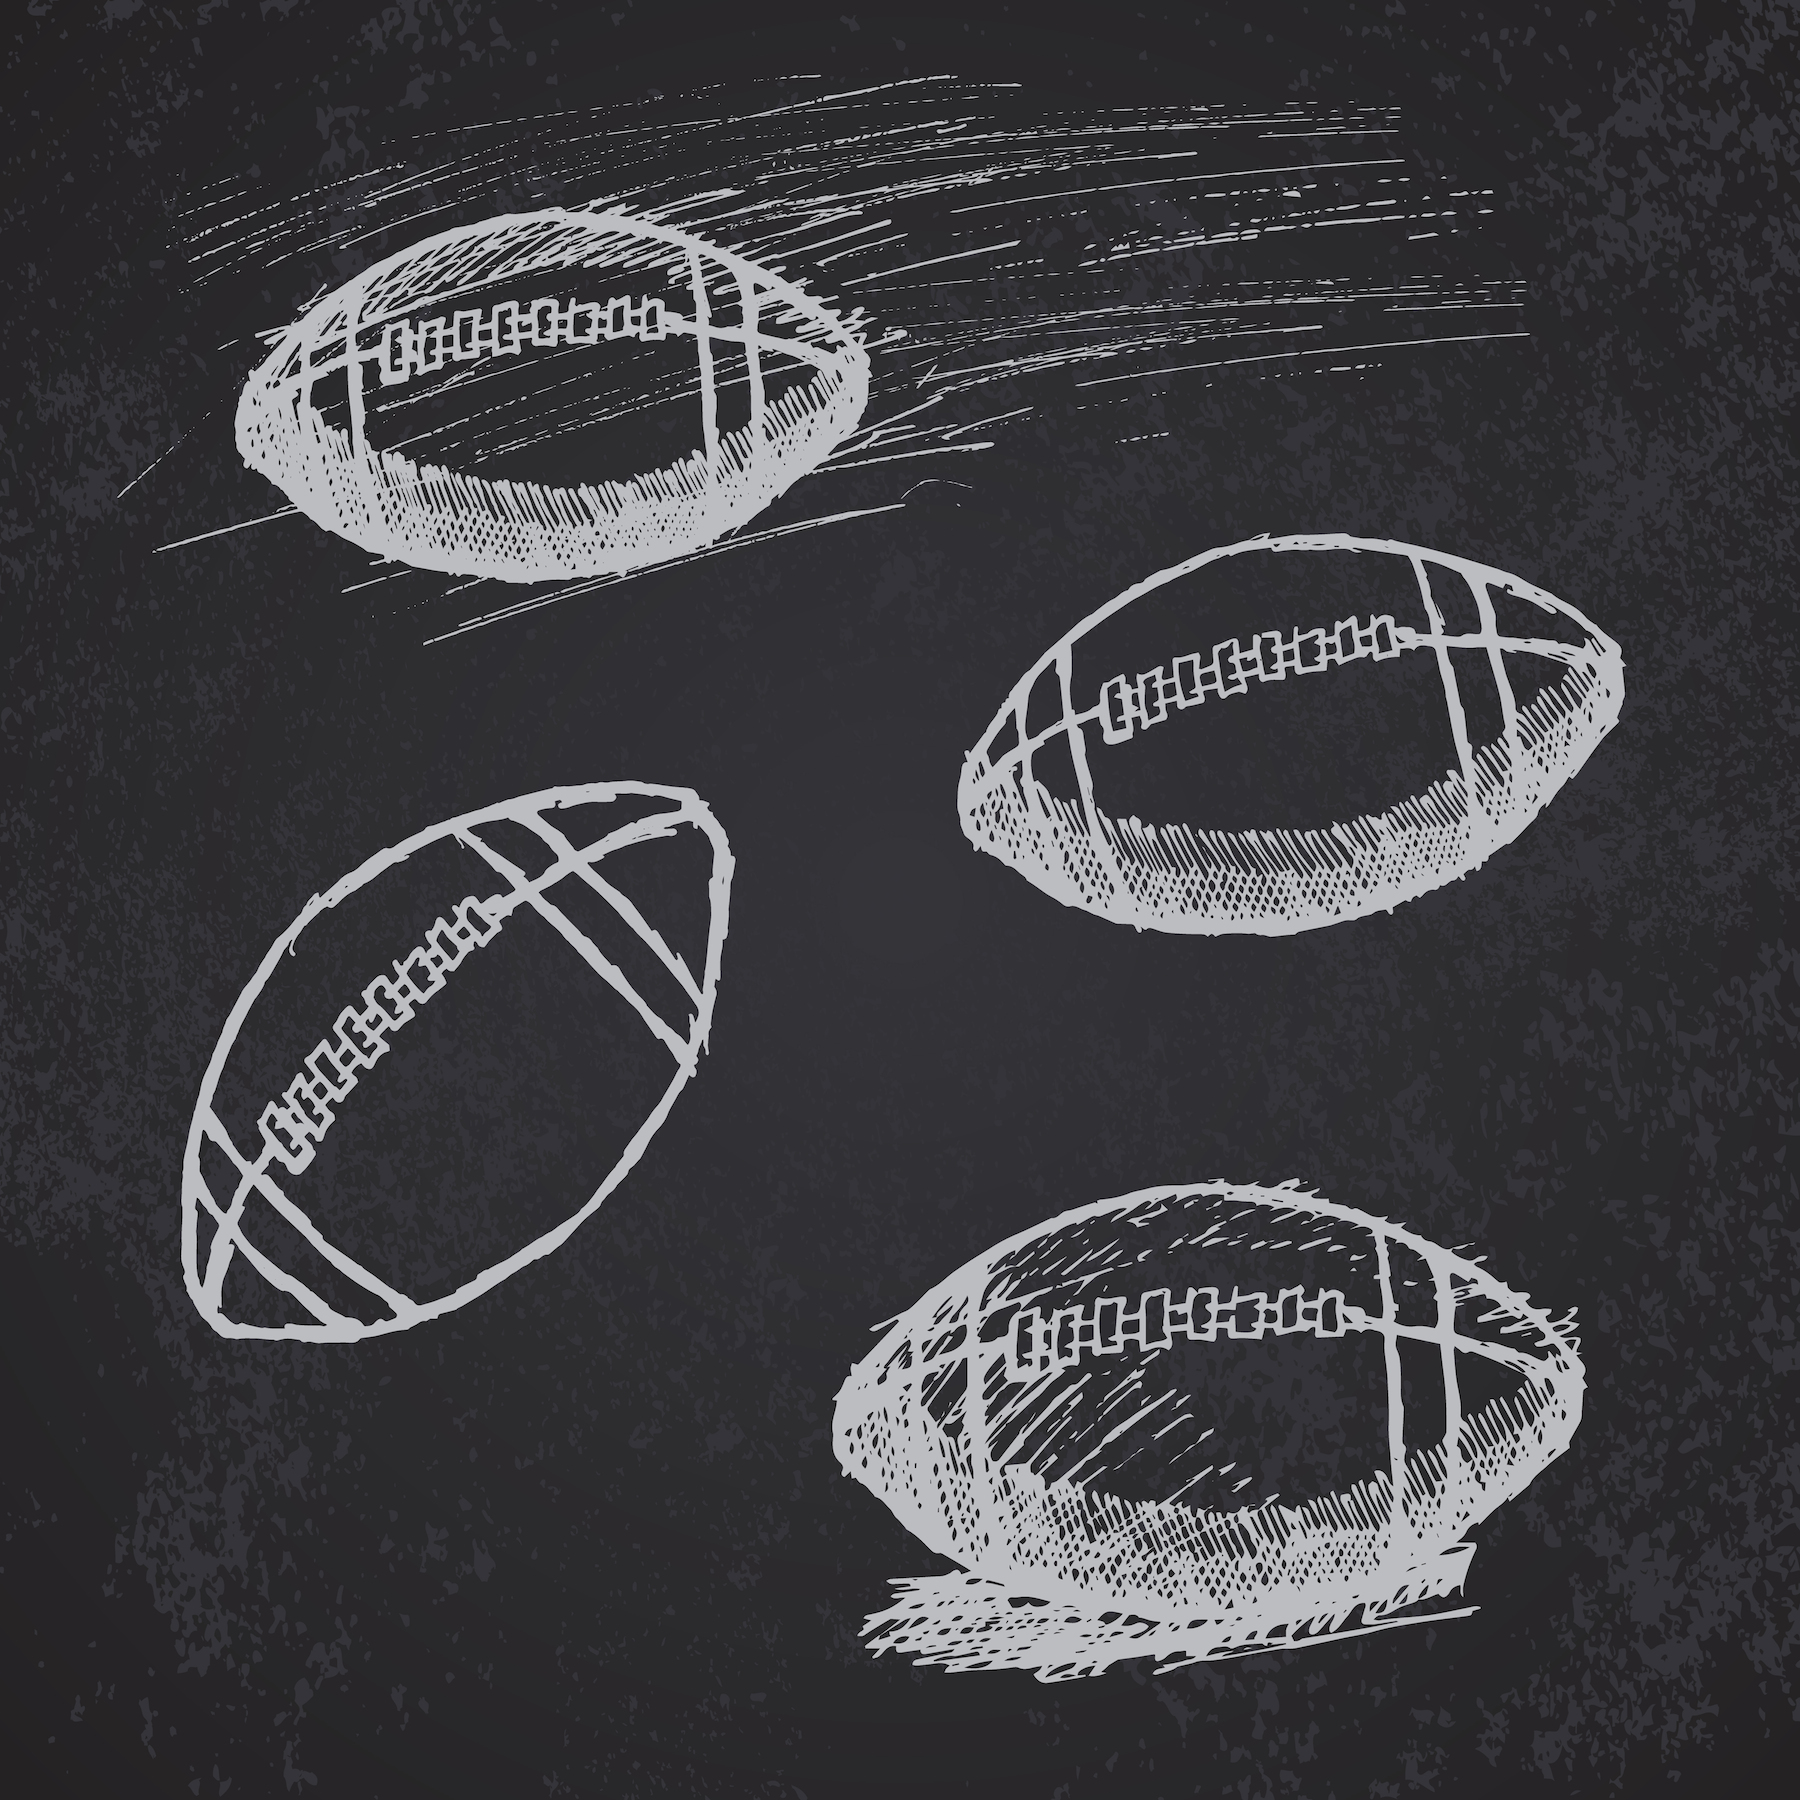 A football fan's guide to the Super Bowl—for people who aren't football fans